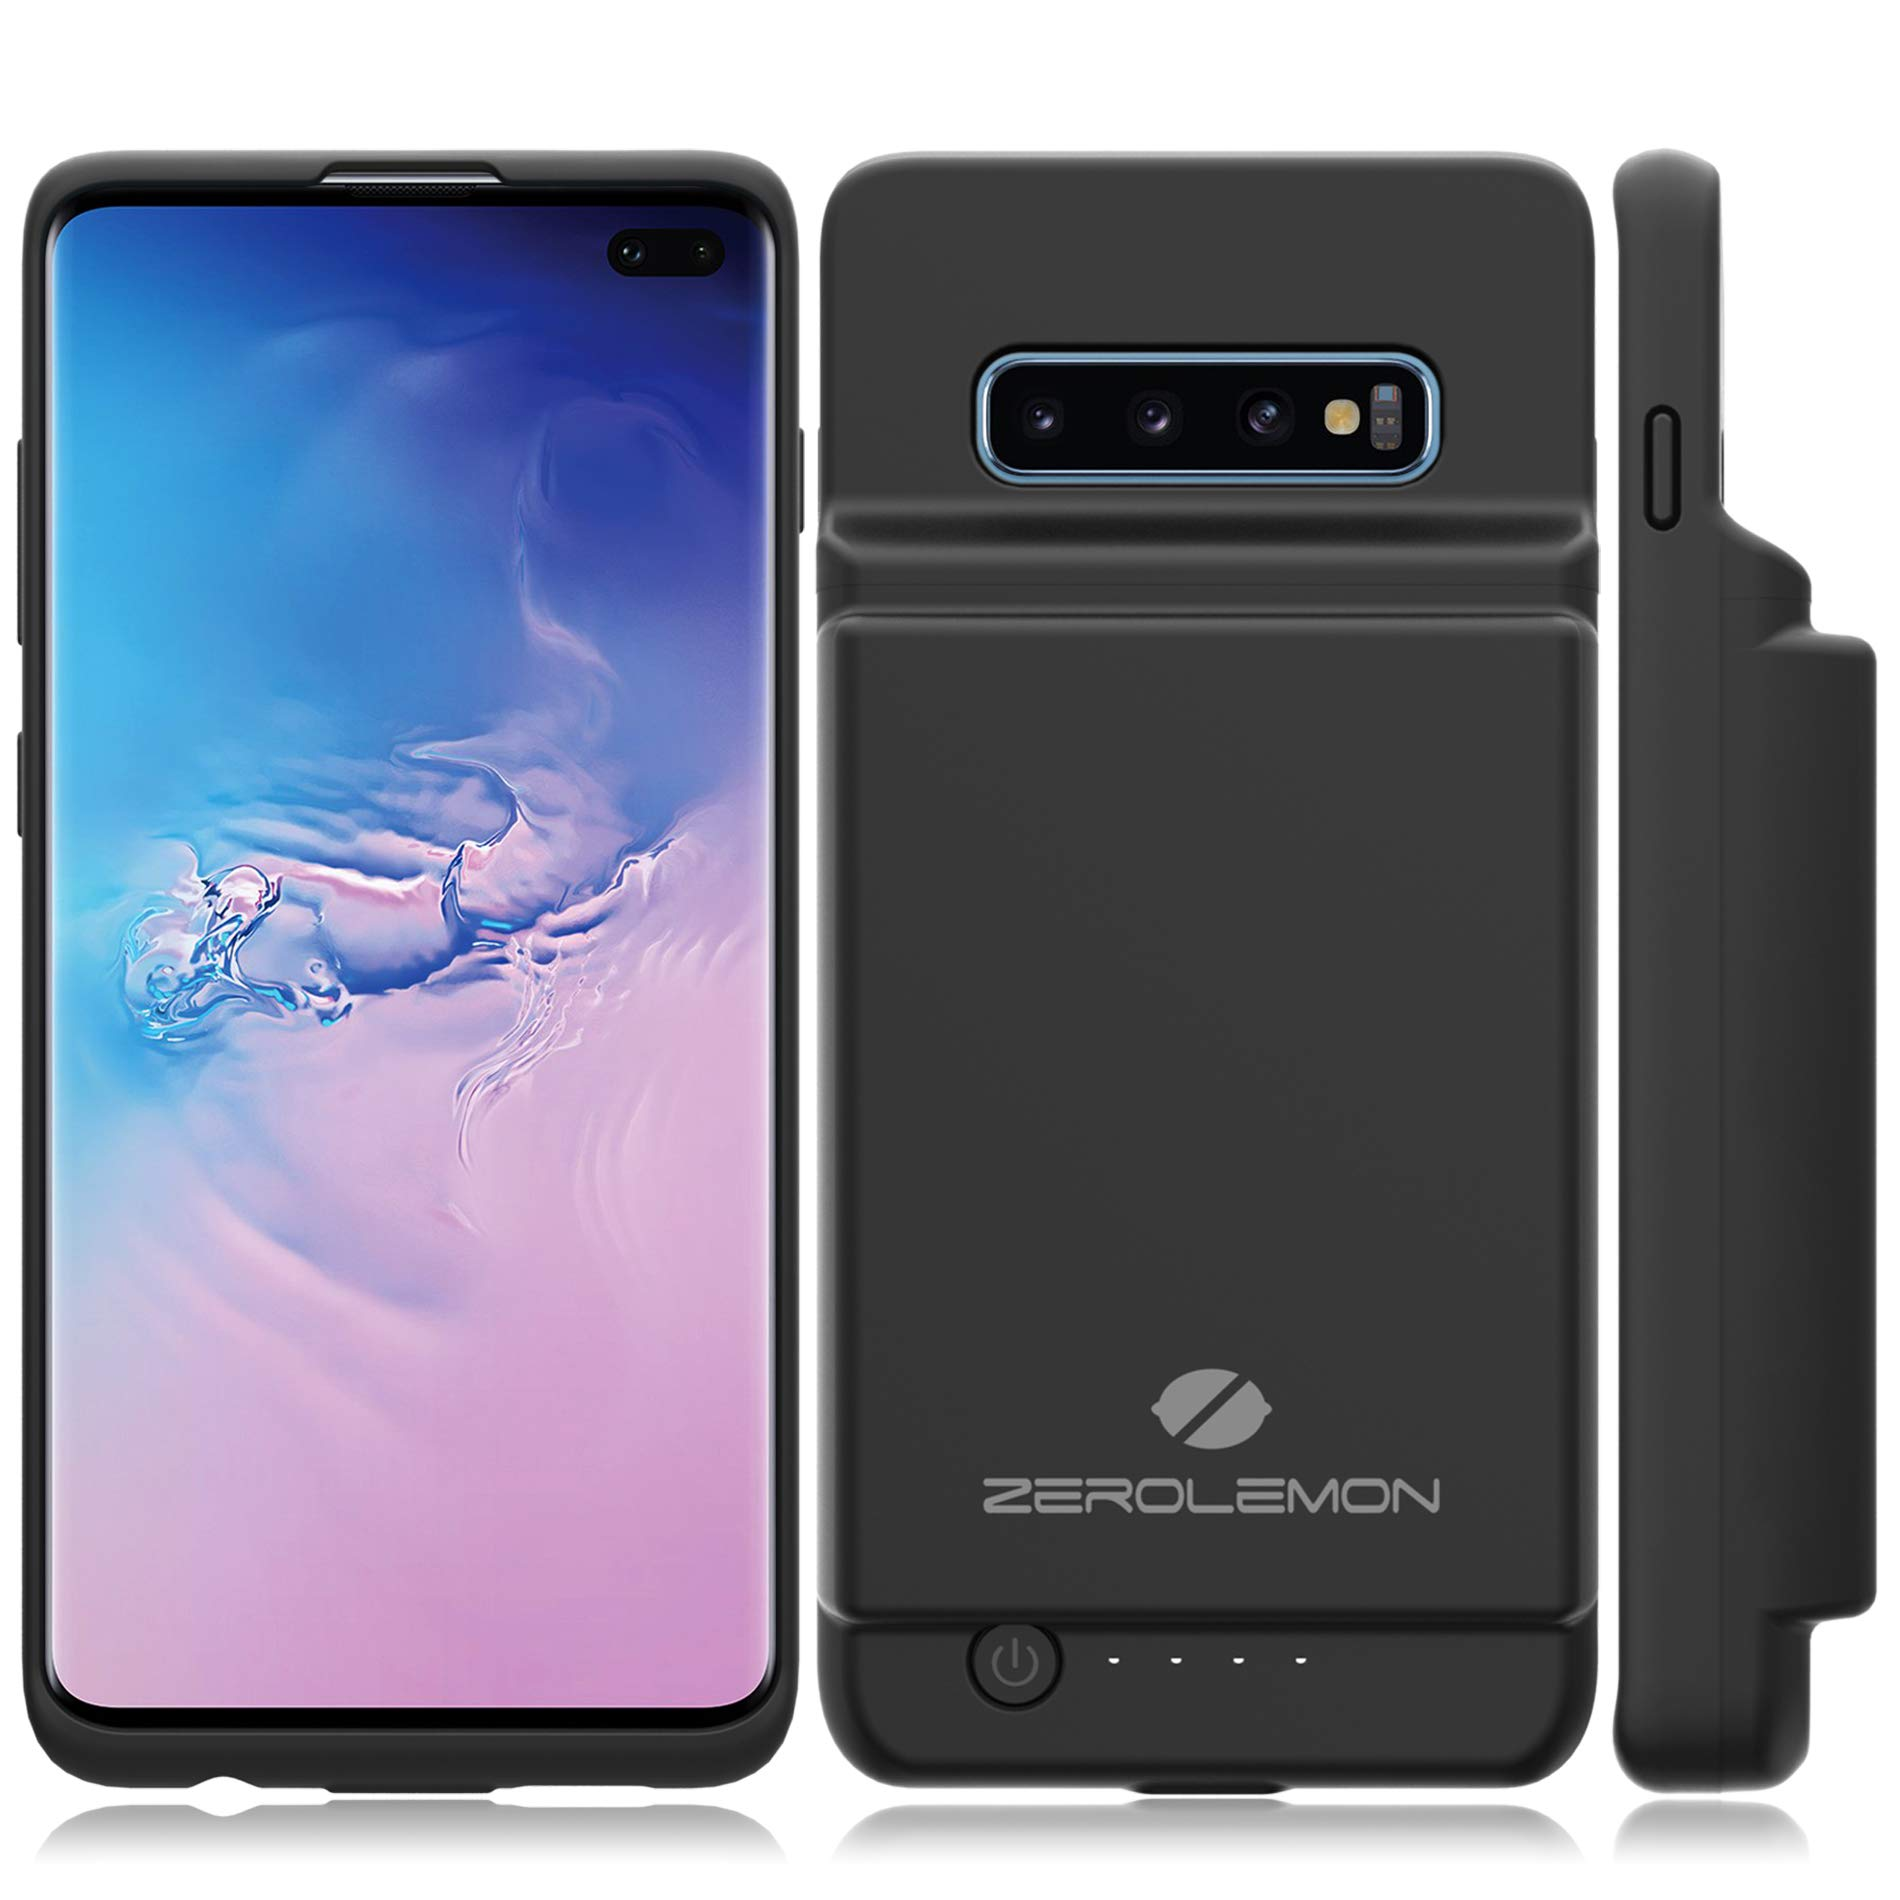 ZeroLemon Galaxy S10 Plus Battery Case, 10000mAh Extended Rechargeable Battery with Soft TPU Protective Portable Case for Galaxy S10 - Black by ZEROLEMON